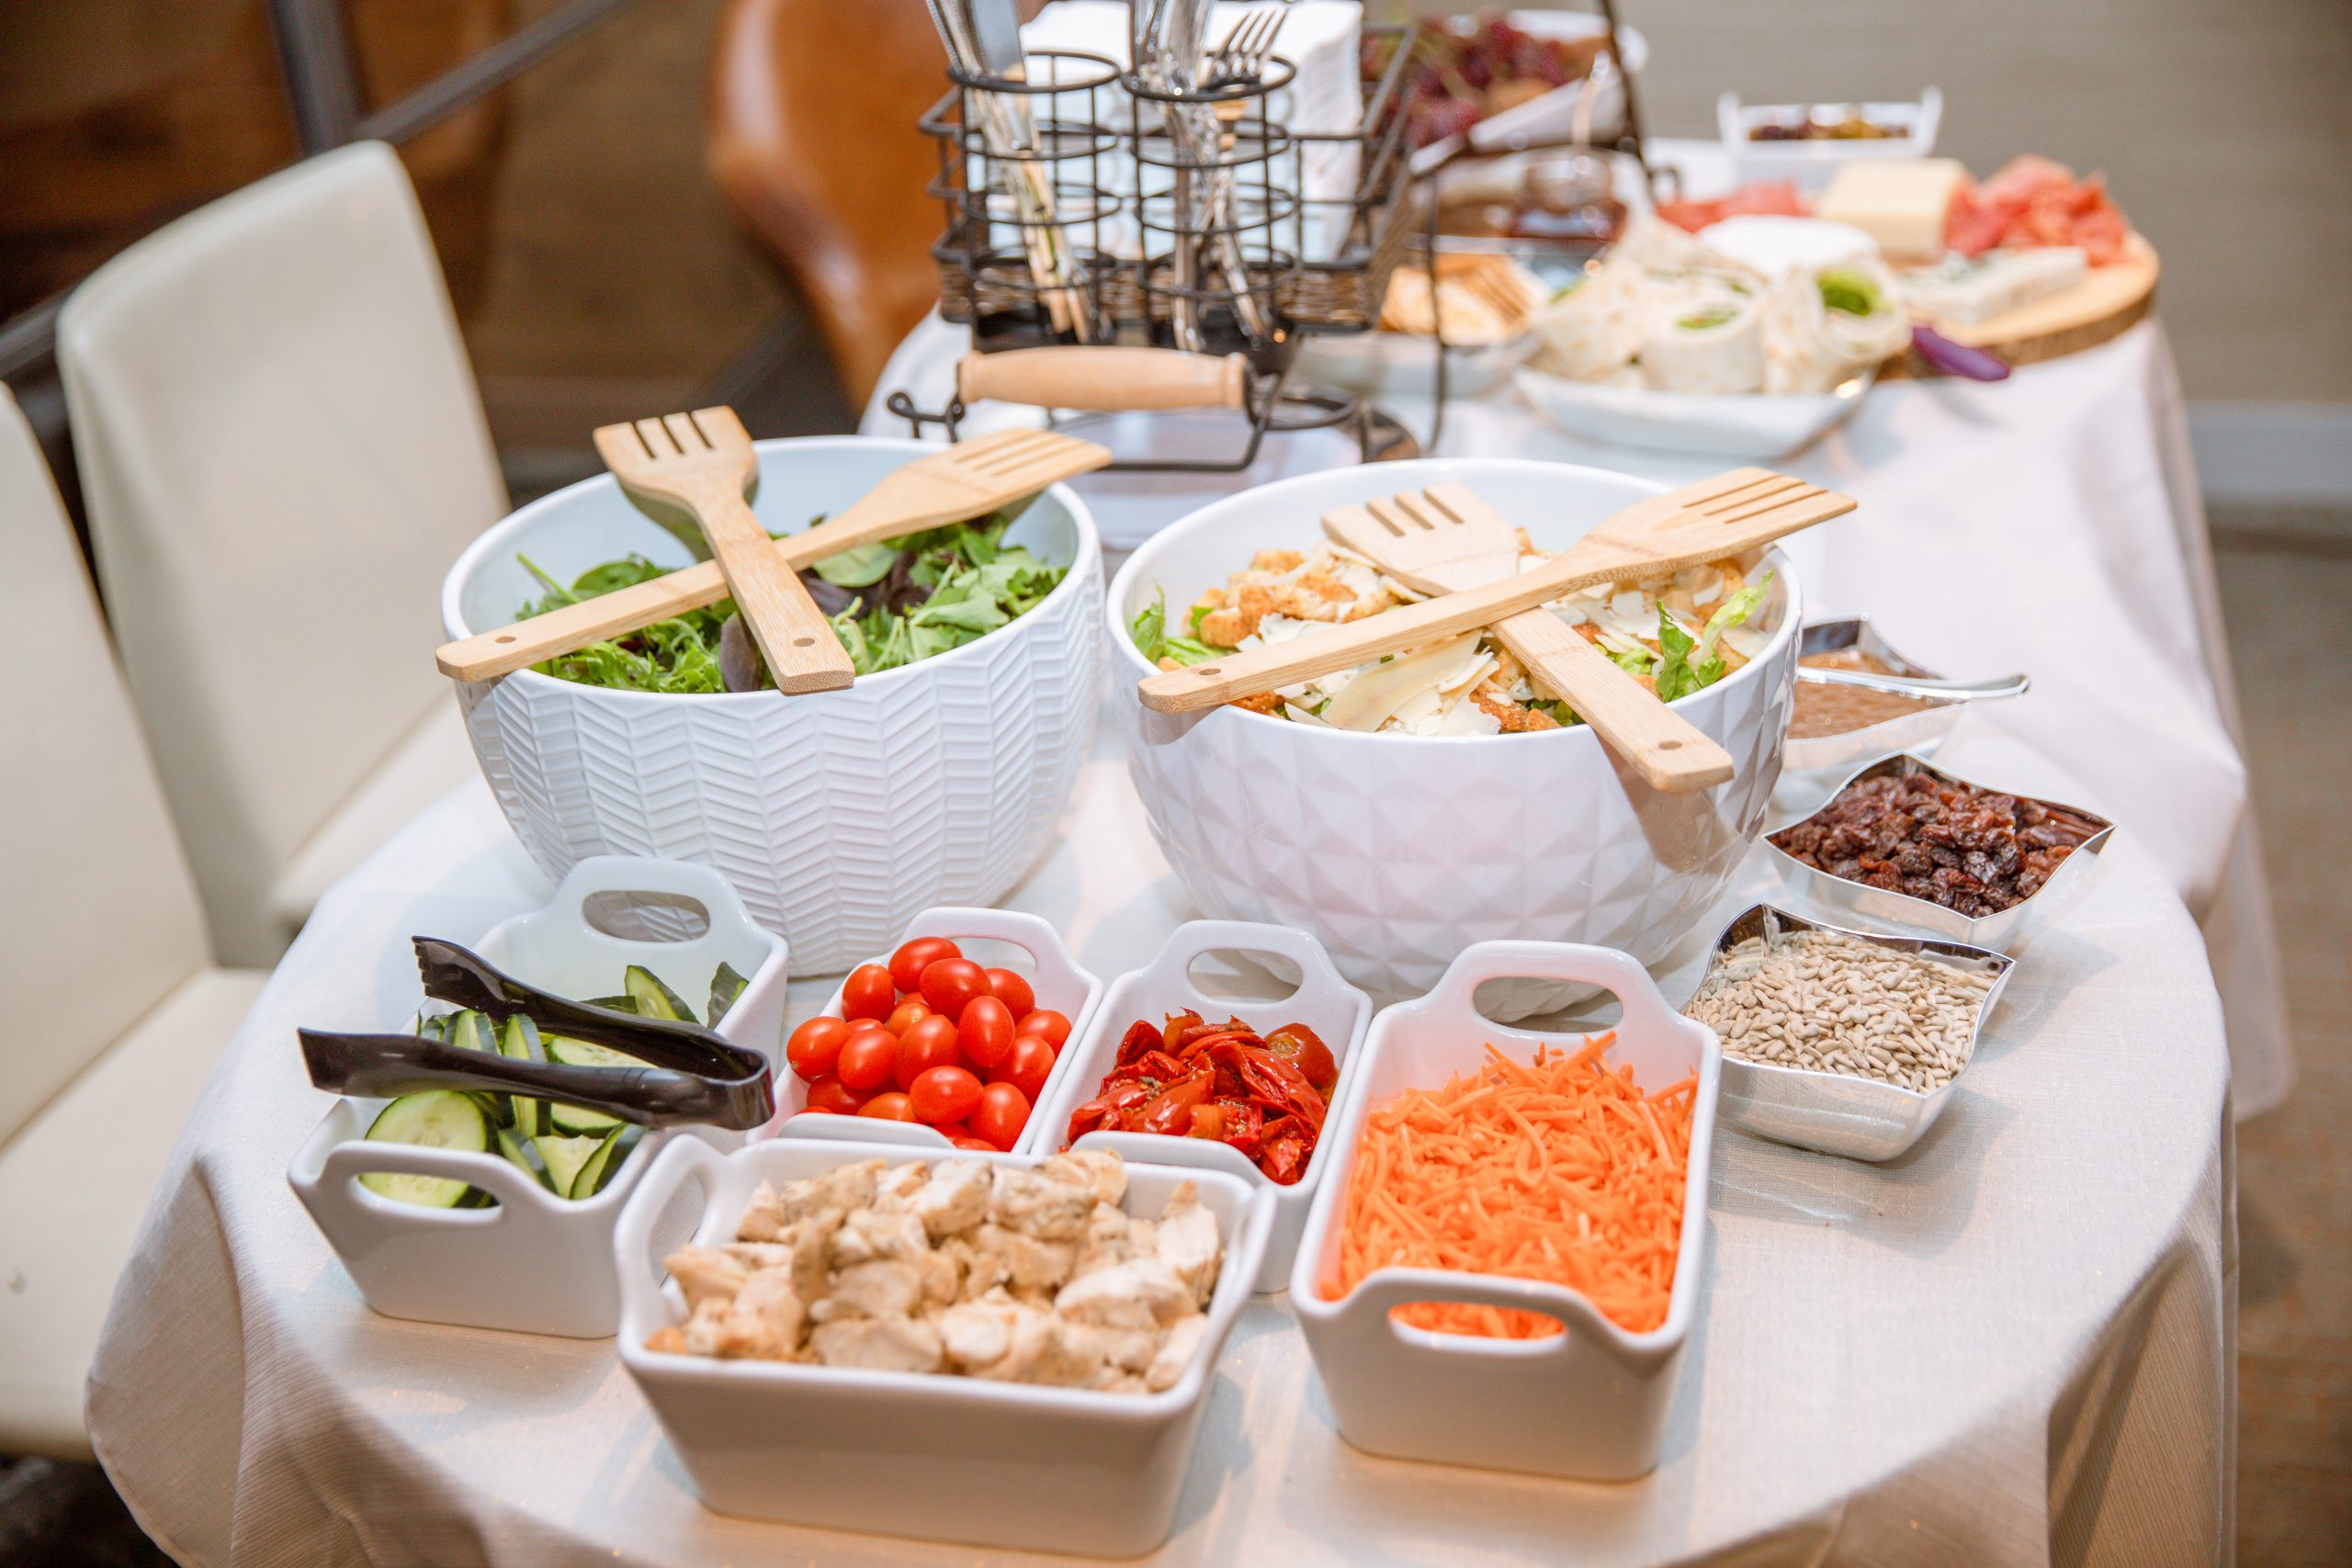 two white tables covered in white tablecloths with a salad bar sitting on top with lettuce, carrots, cucumbers, tomatoes, chicken, cheese and utensils